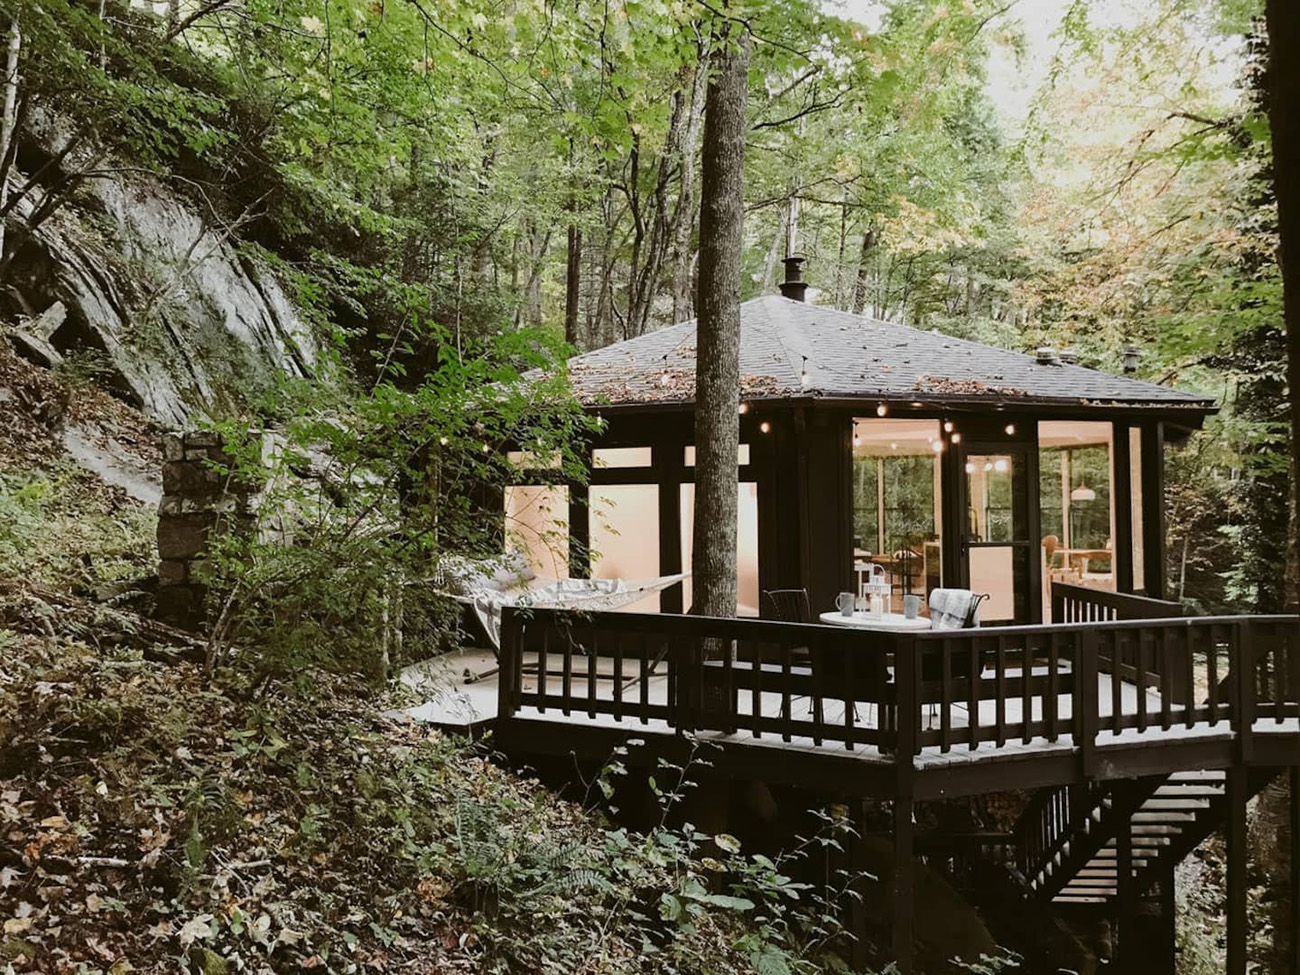 Mountain getaway: 8 romantic Airbnbs starting at $85 a night